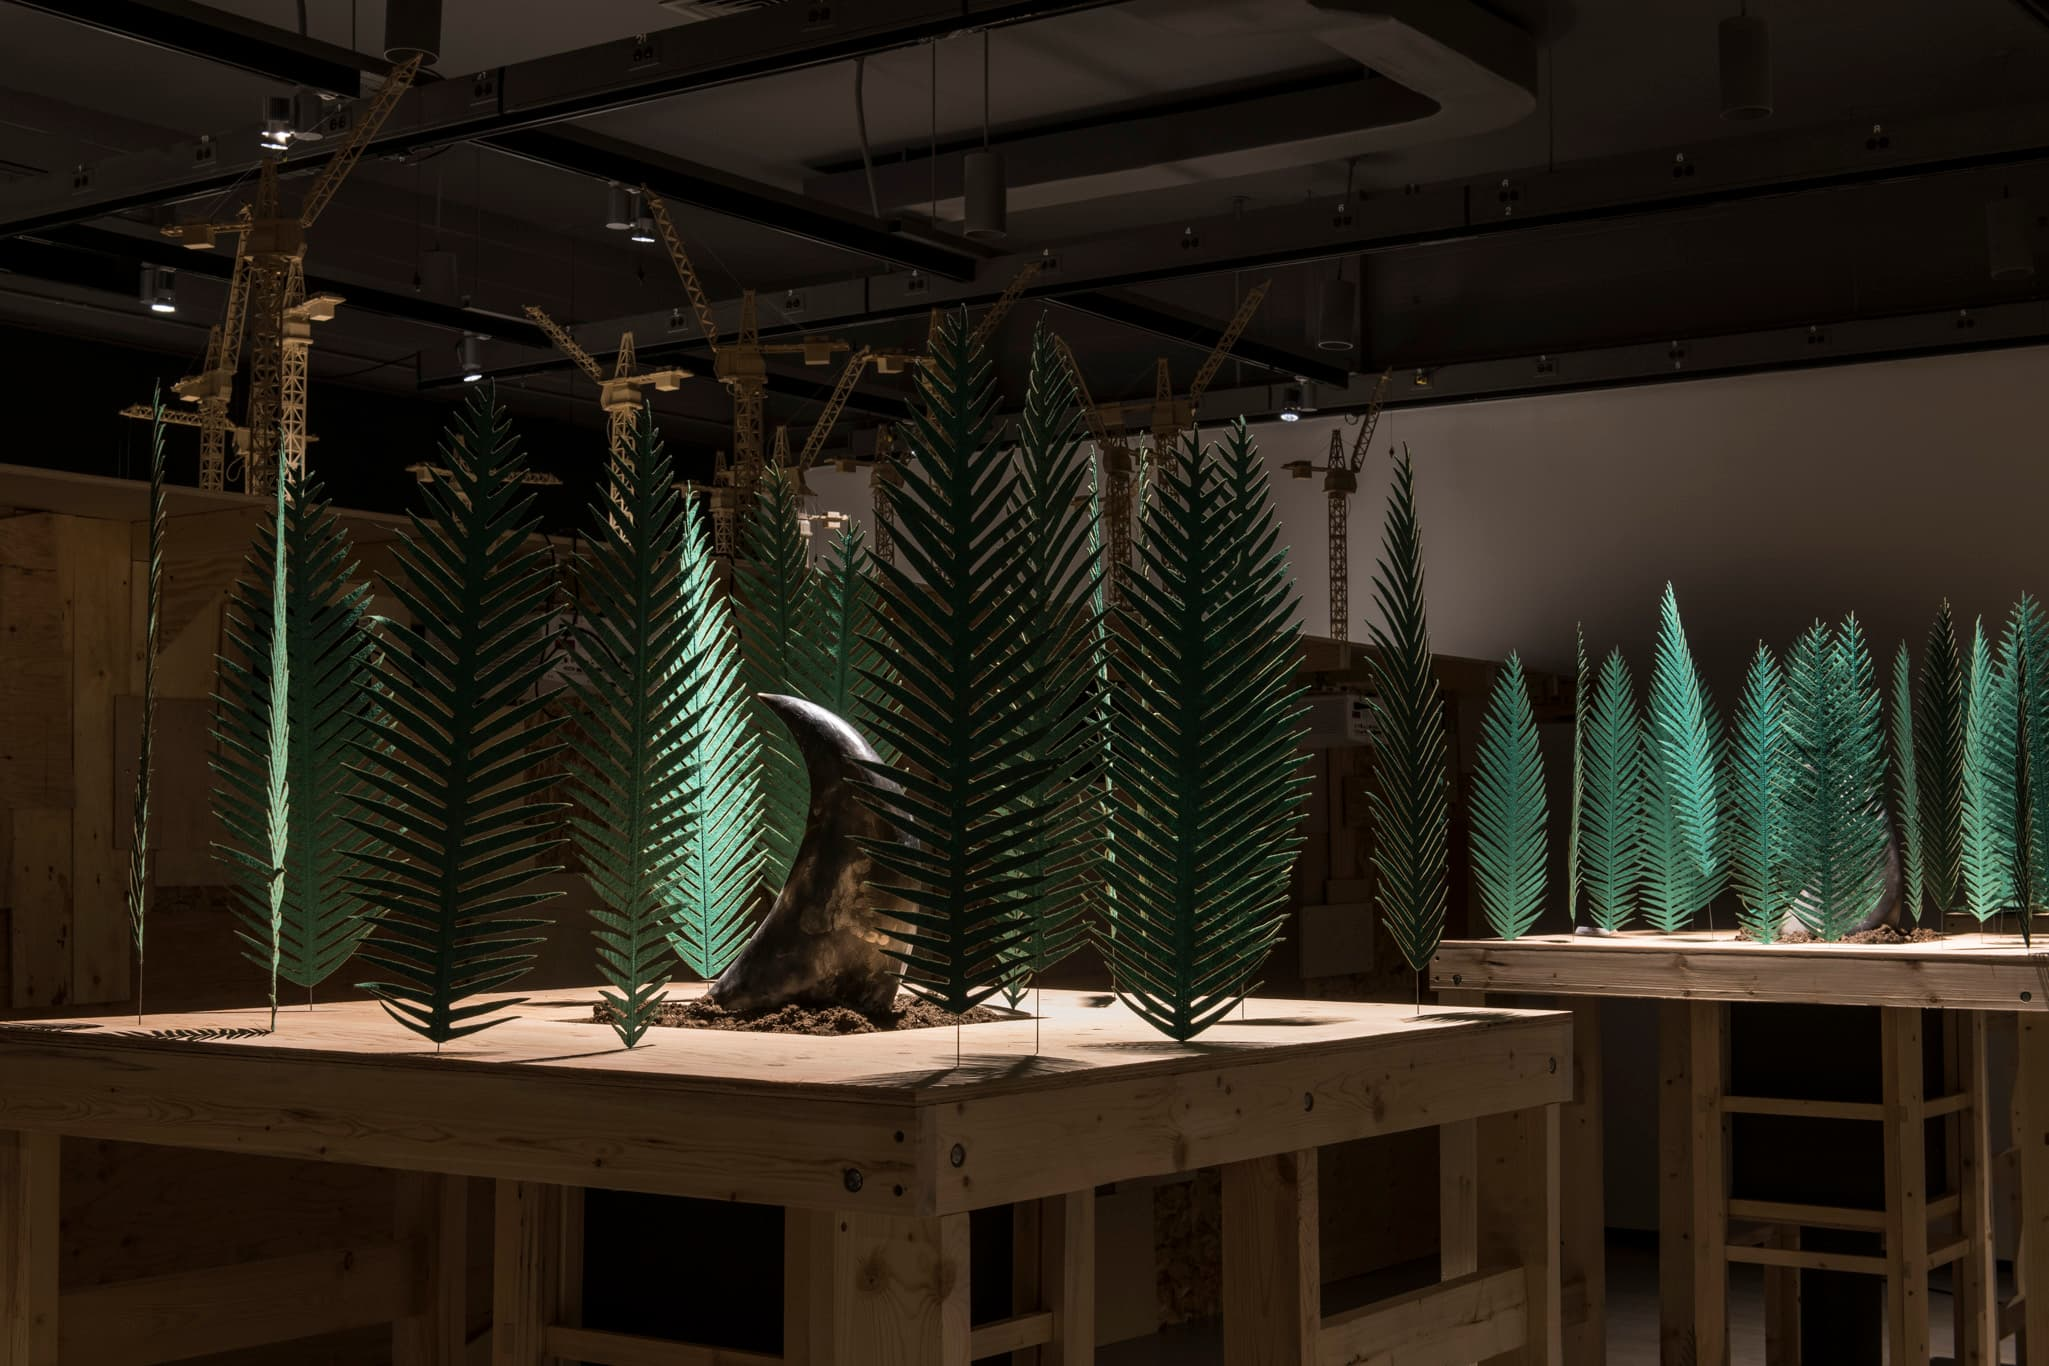 Installation view of Rita McKeoughs exhibition with green ferns